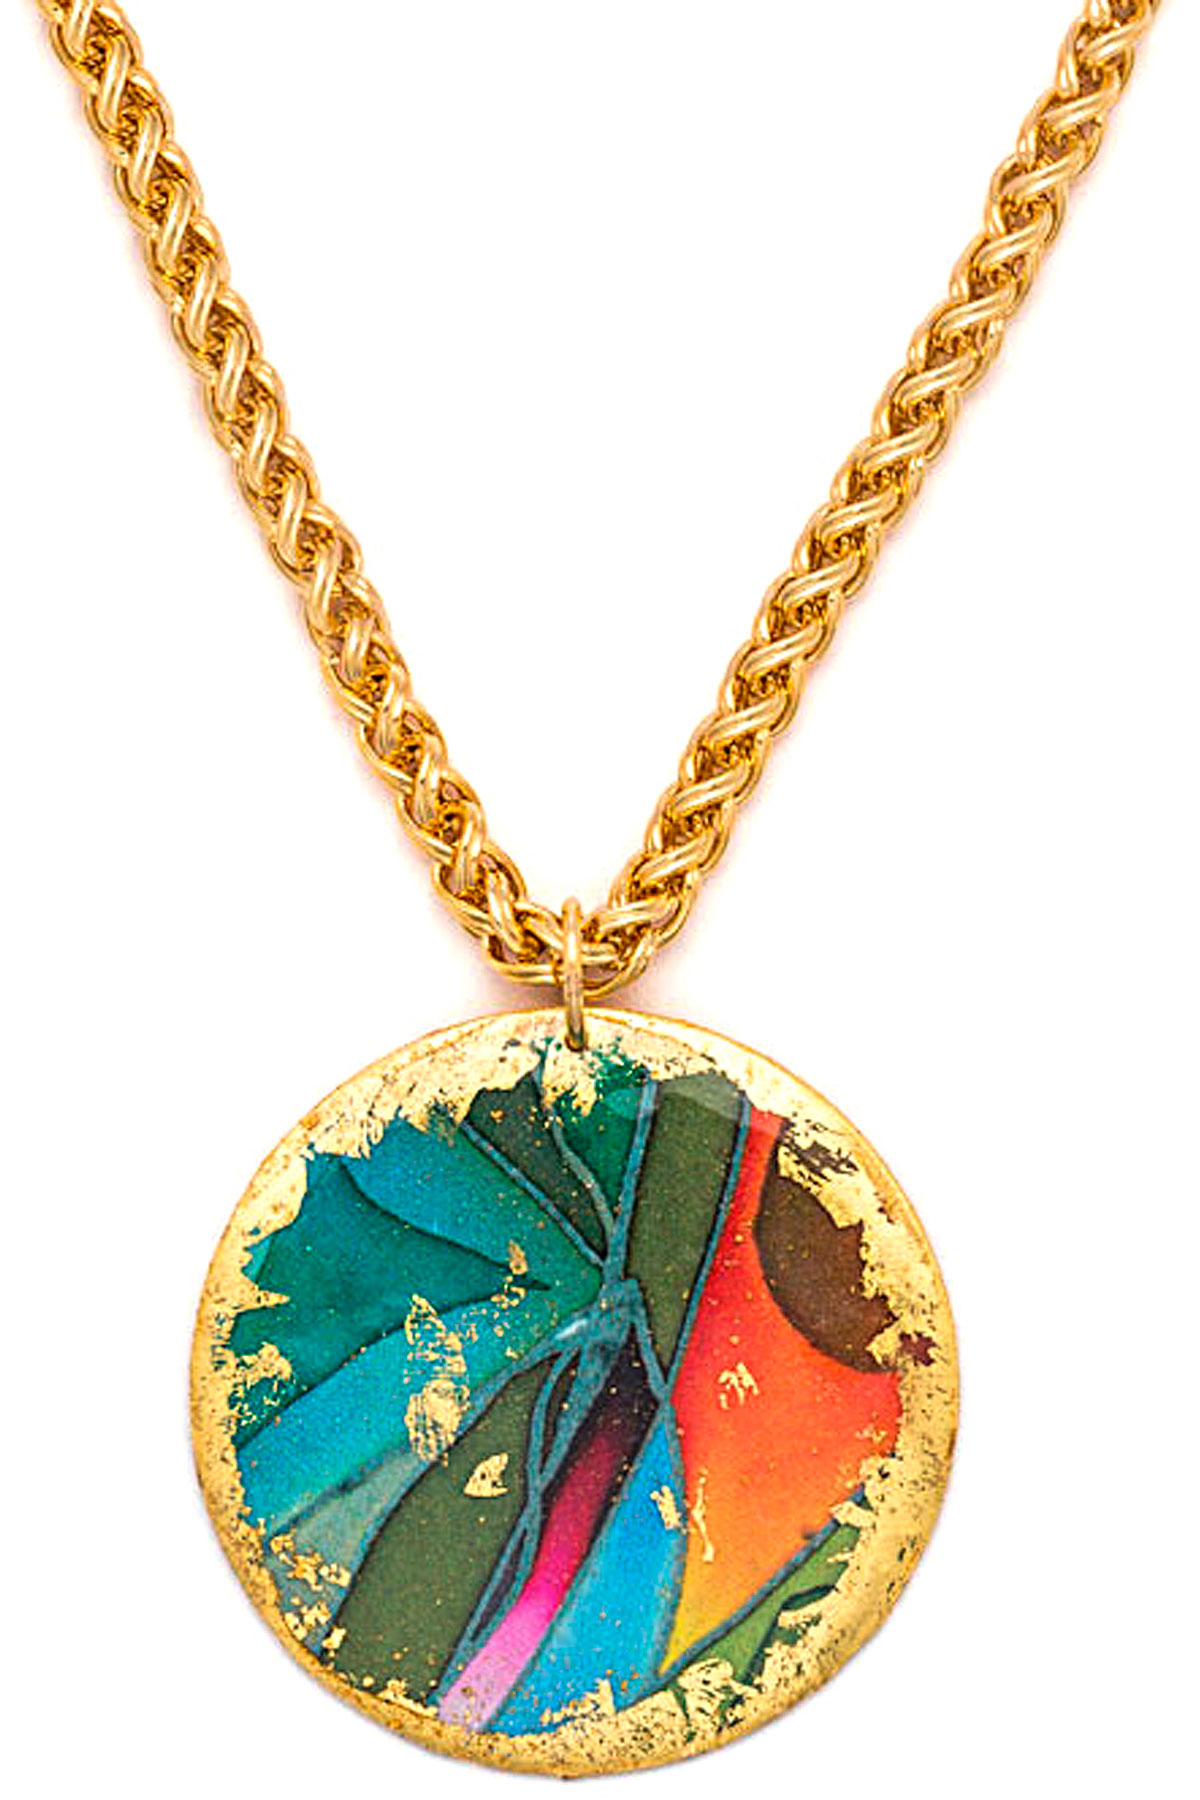 Evocateur Necklaces, Yellow Gold, 22K Gold Leaf, 2019